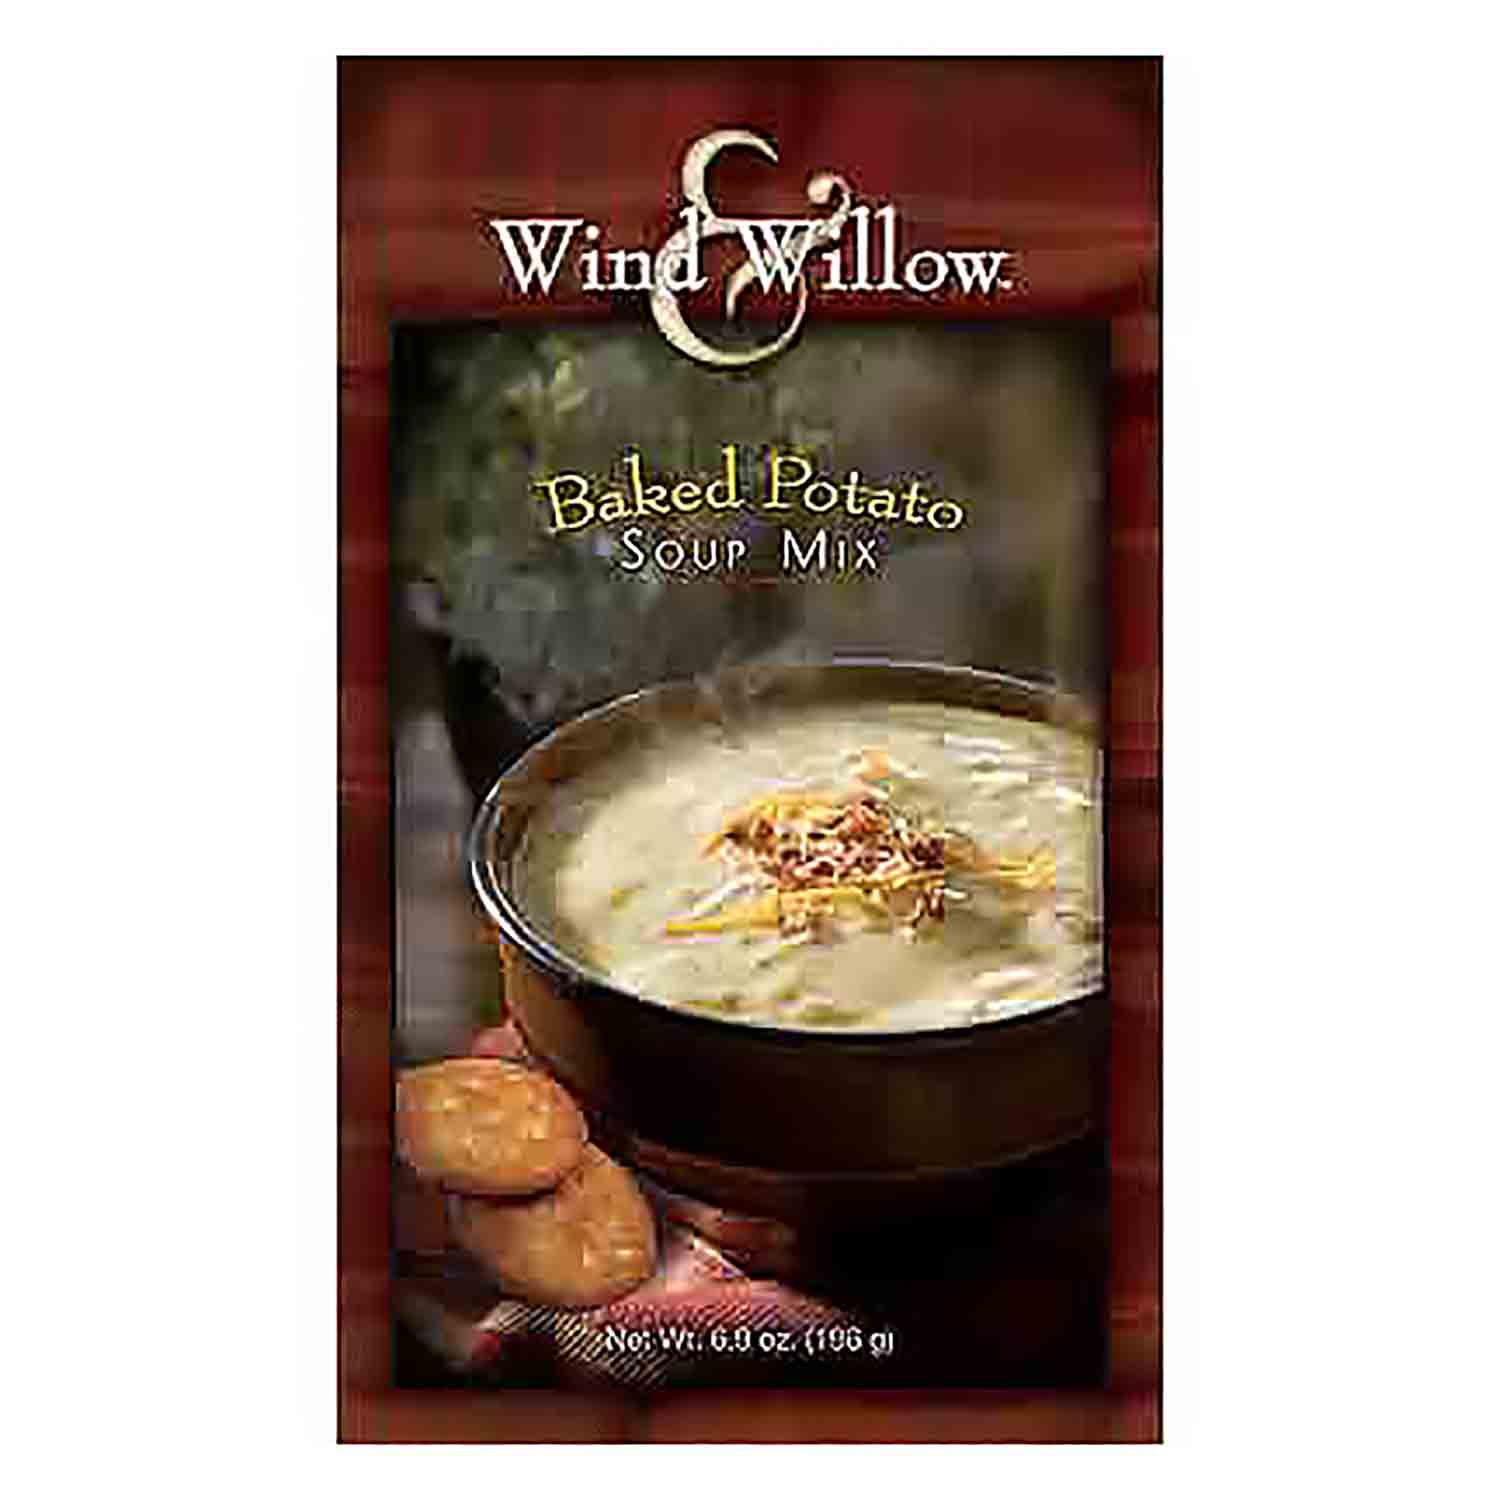 Baked Potato Wind & Willow Soup Mix